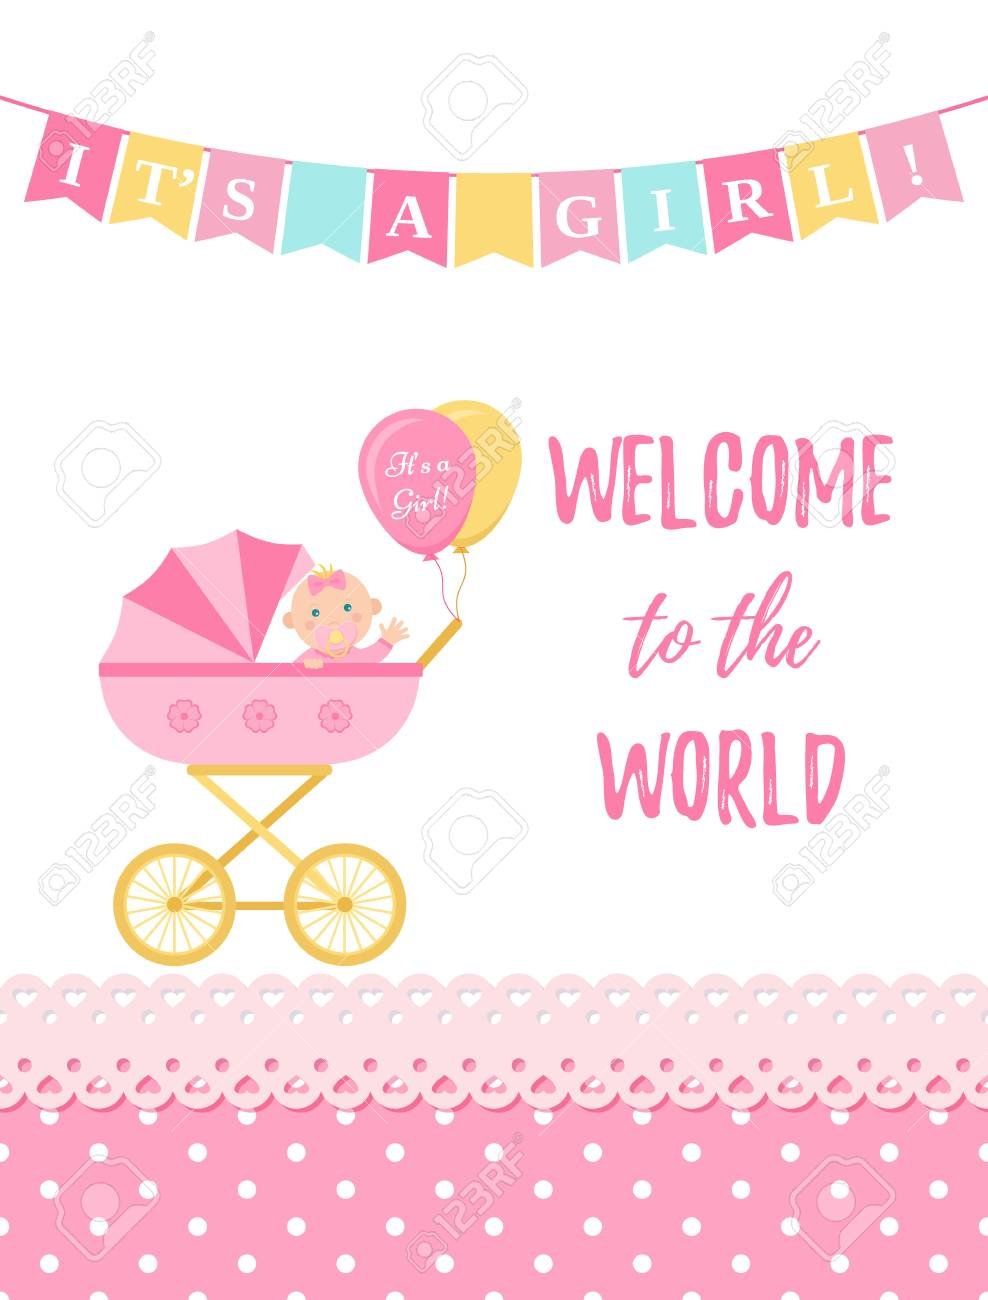 Baby Shower Girl Card Vector Baby Girl Design Cute Pink Banner Royalty Free Cliparts Vectors And Stock Illustration Image 127459247